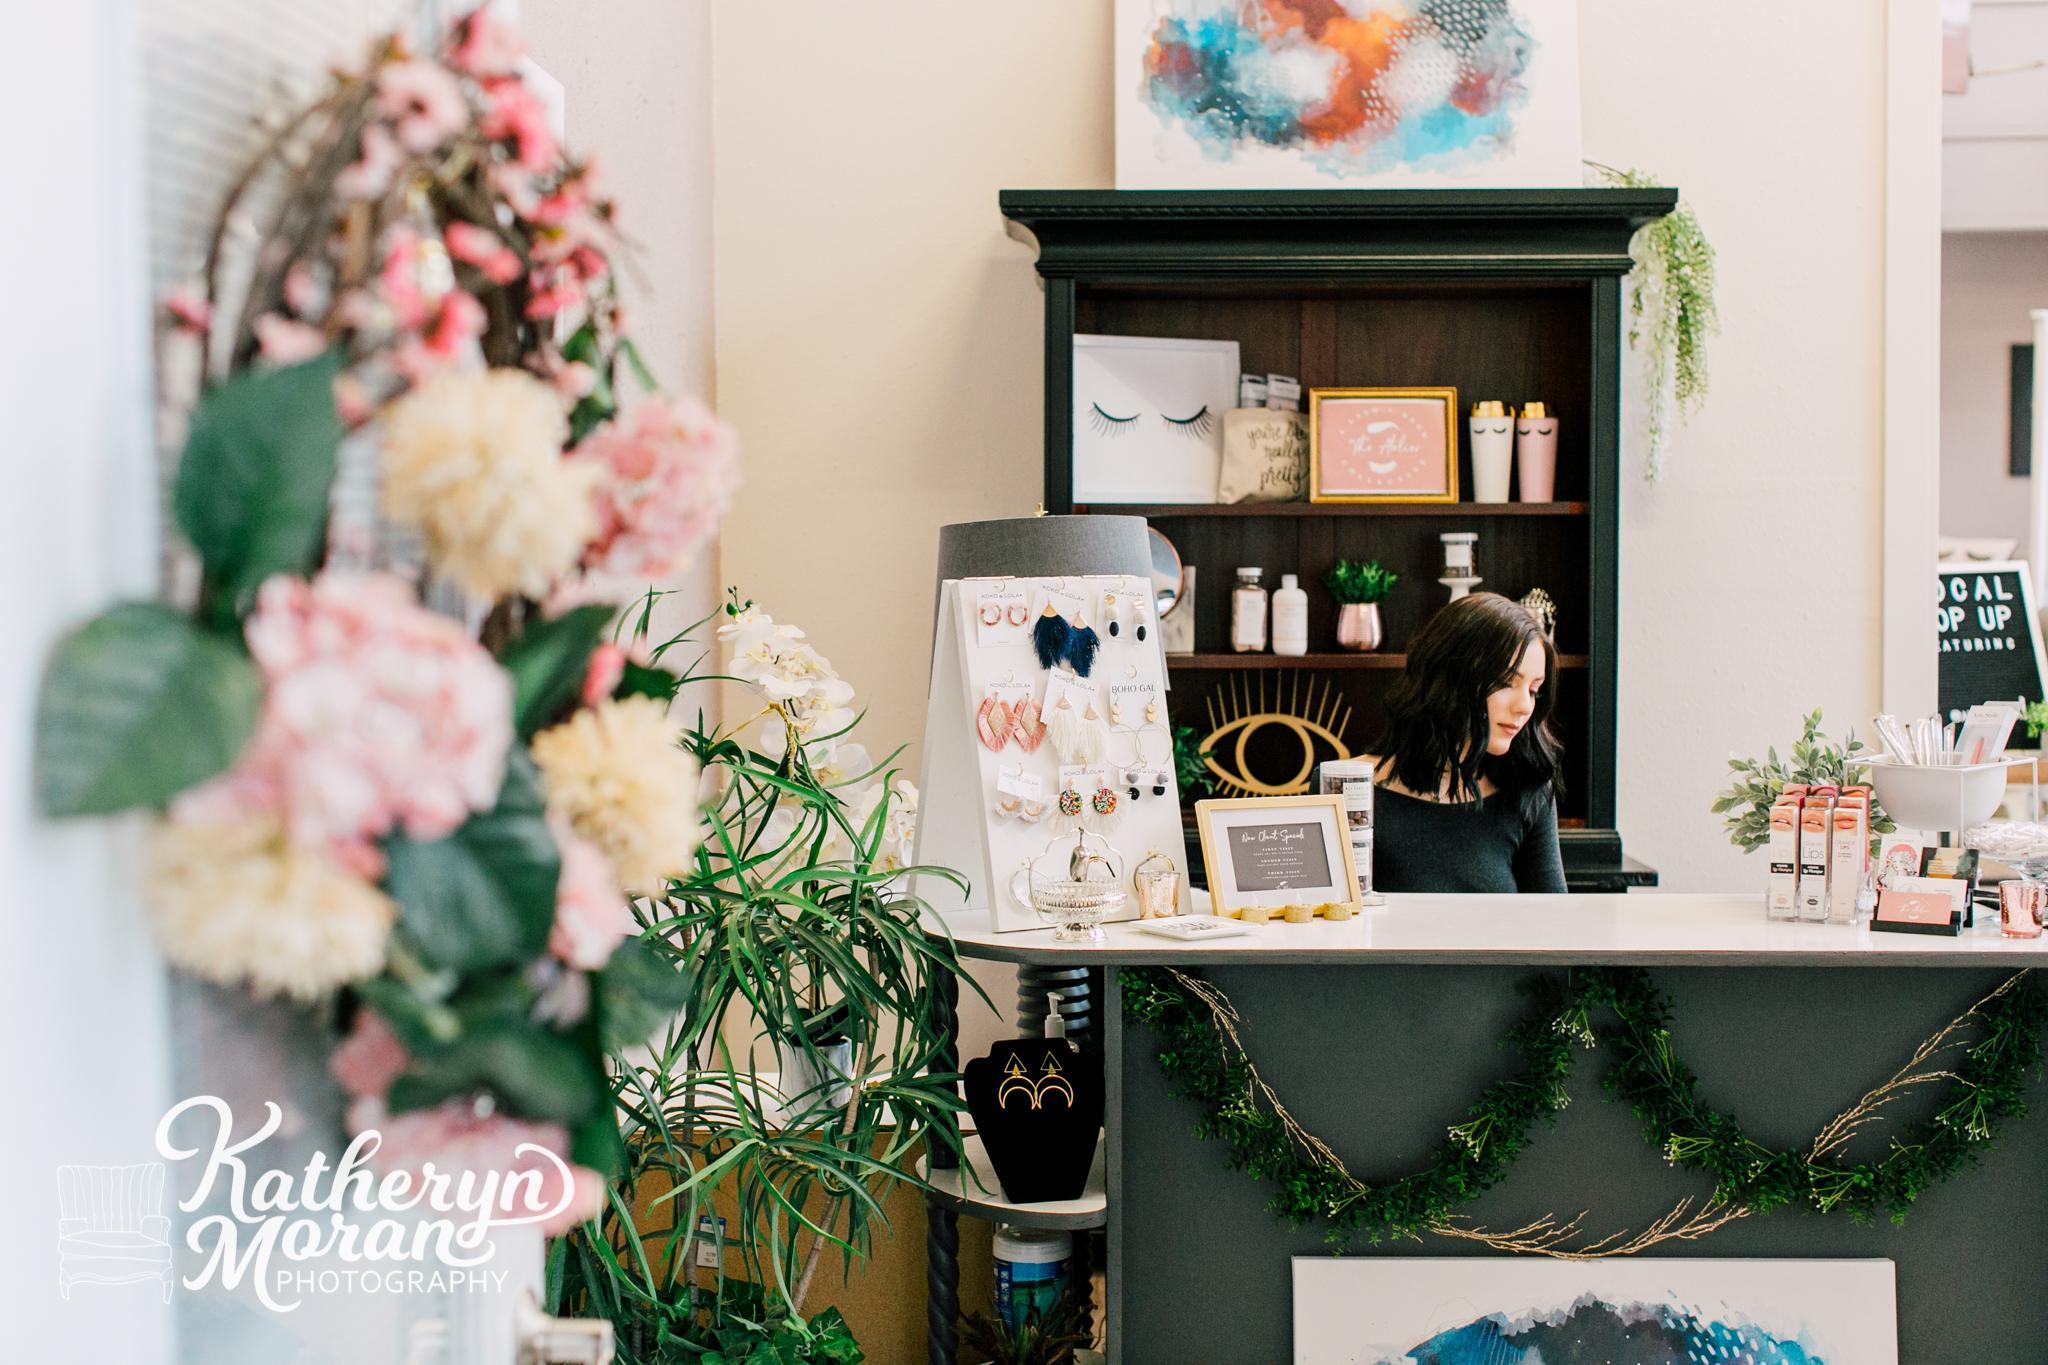 Bellingham Business Photographer Katheryn Moran Atelier Salon